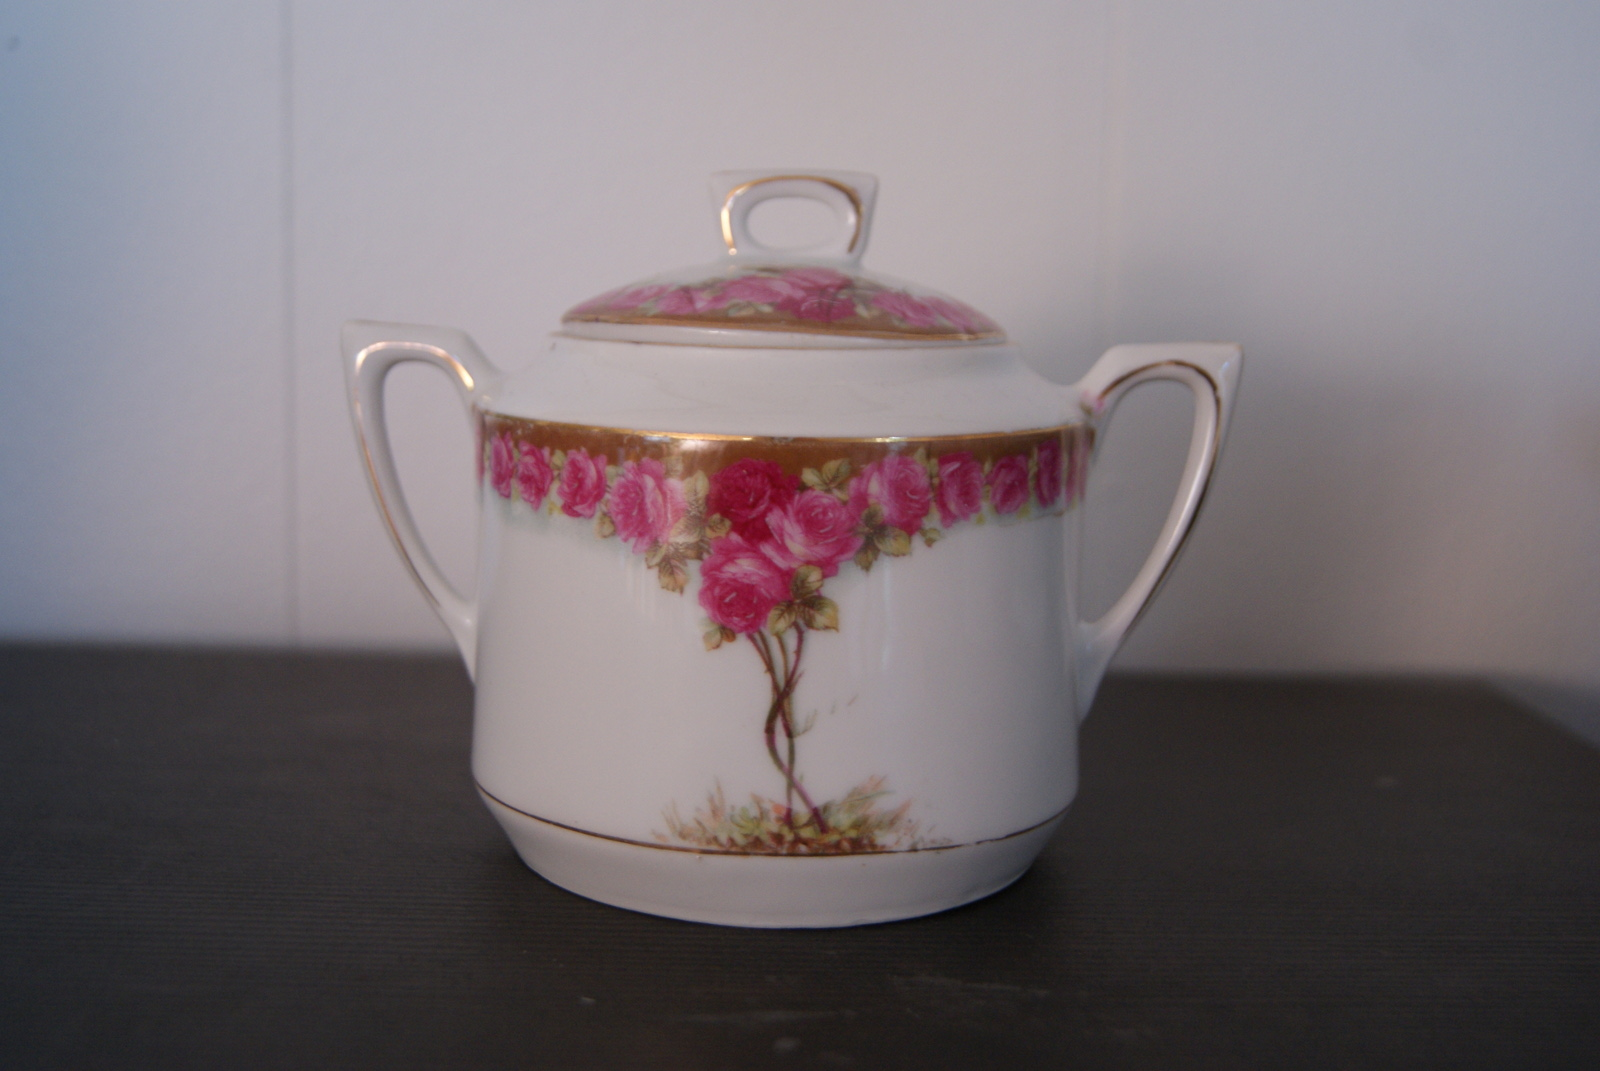 Waldenburg - Altwasser sugar bowl with beautiful Art Nouveau roses